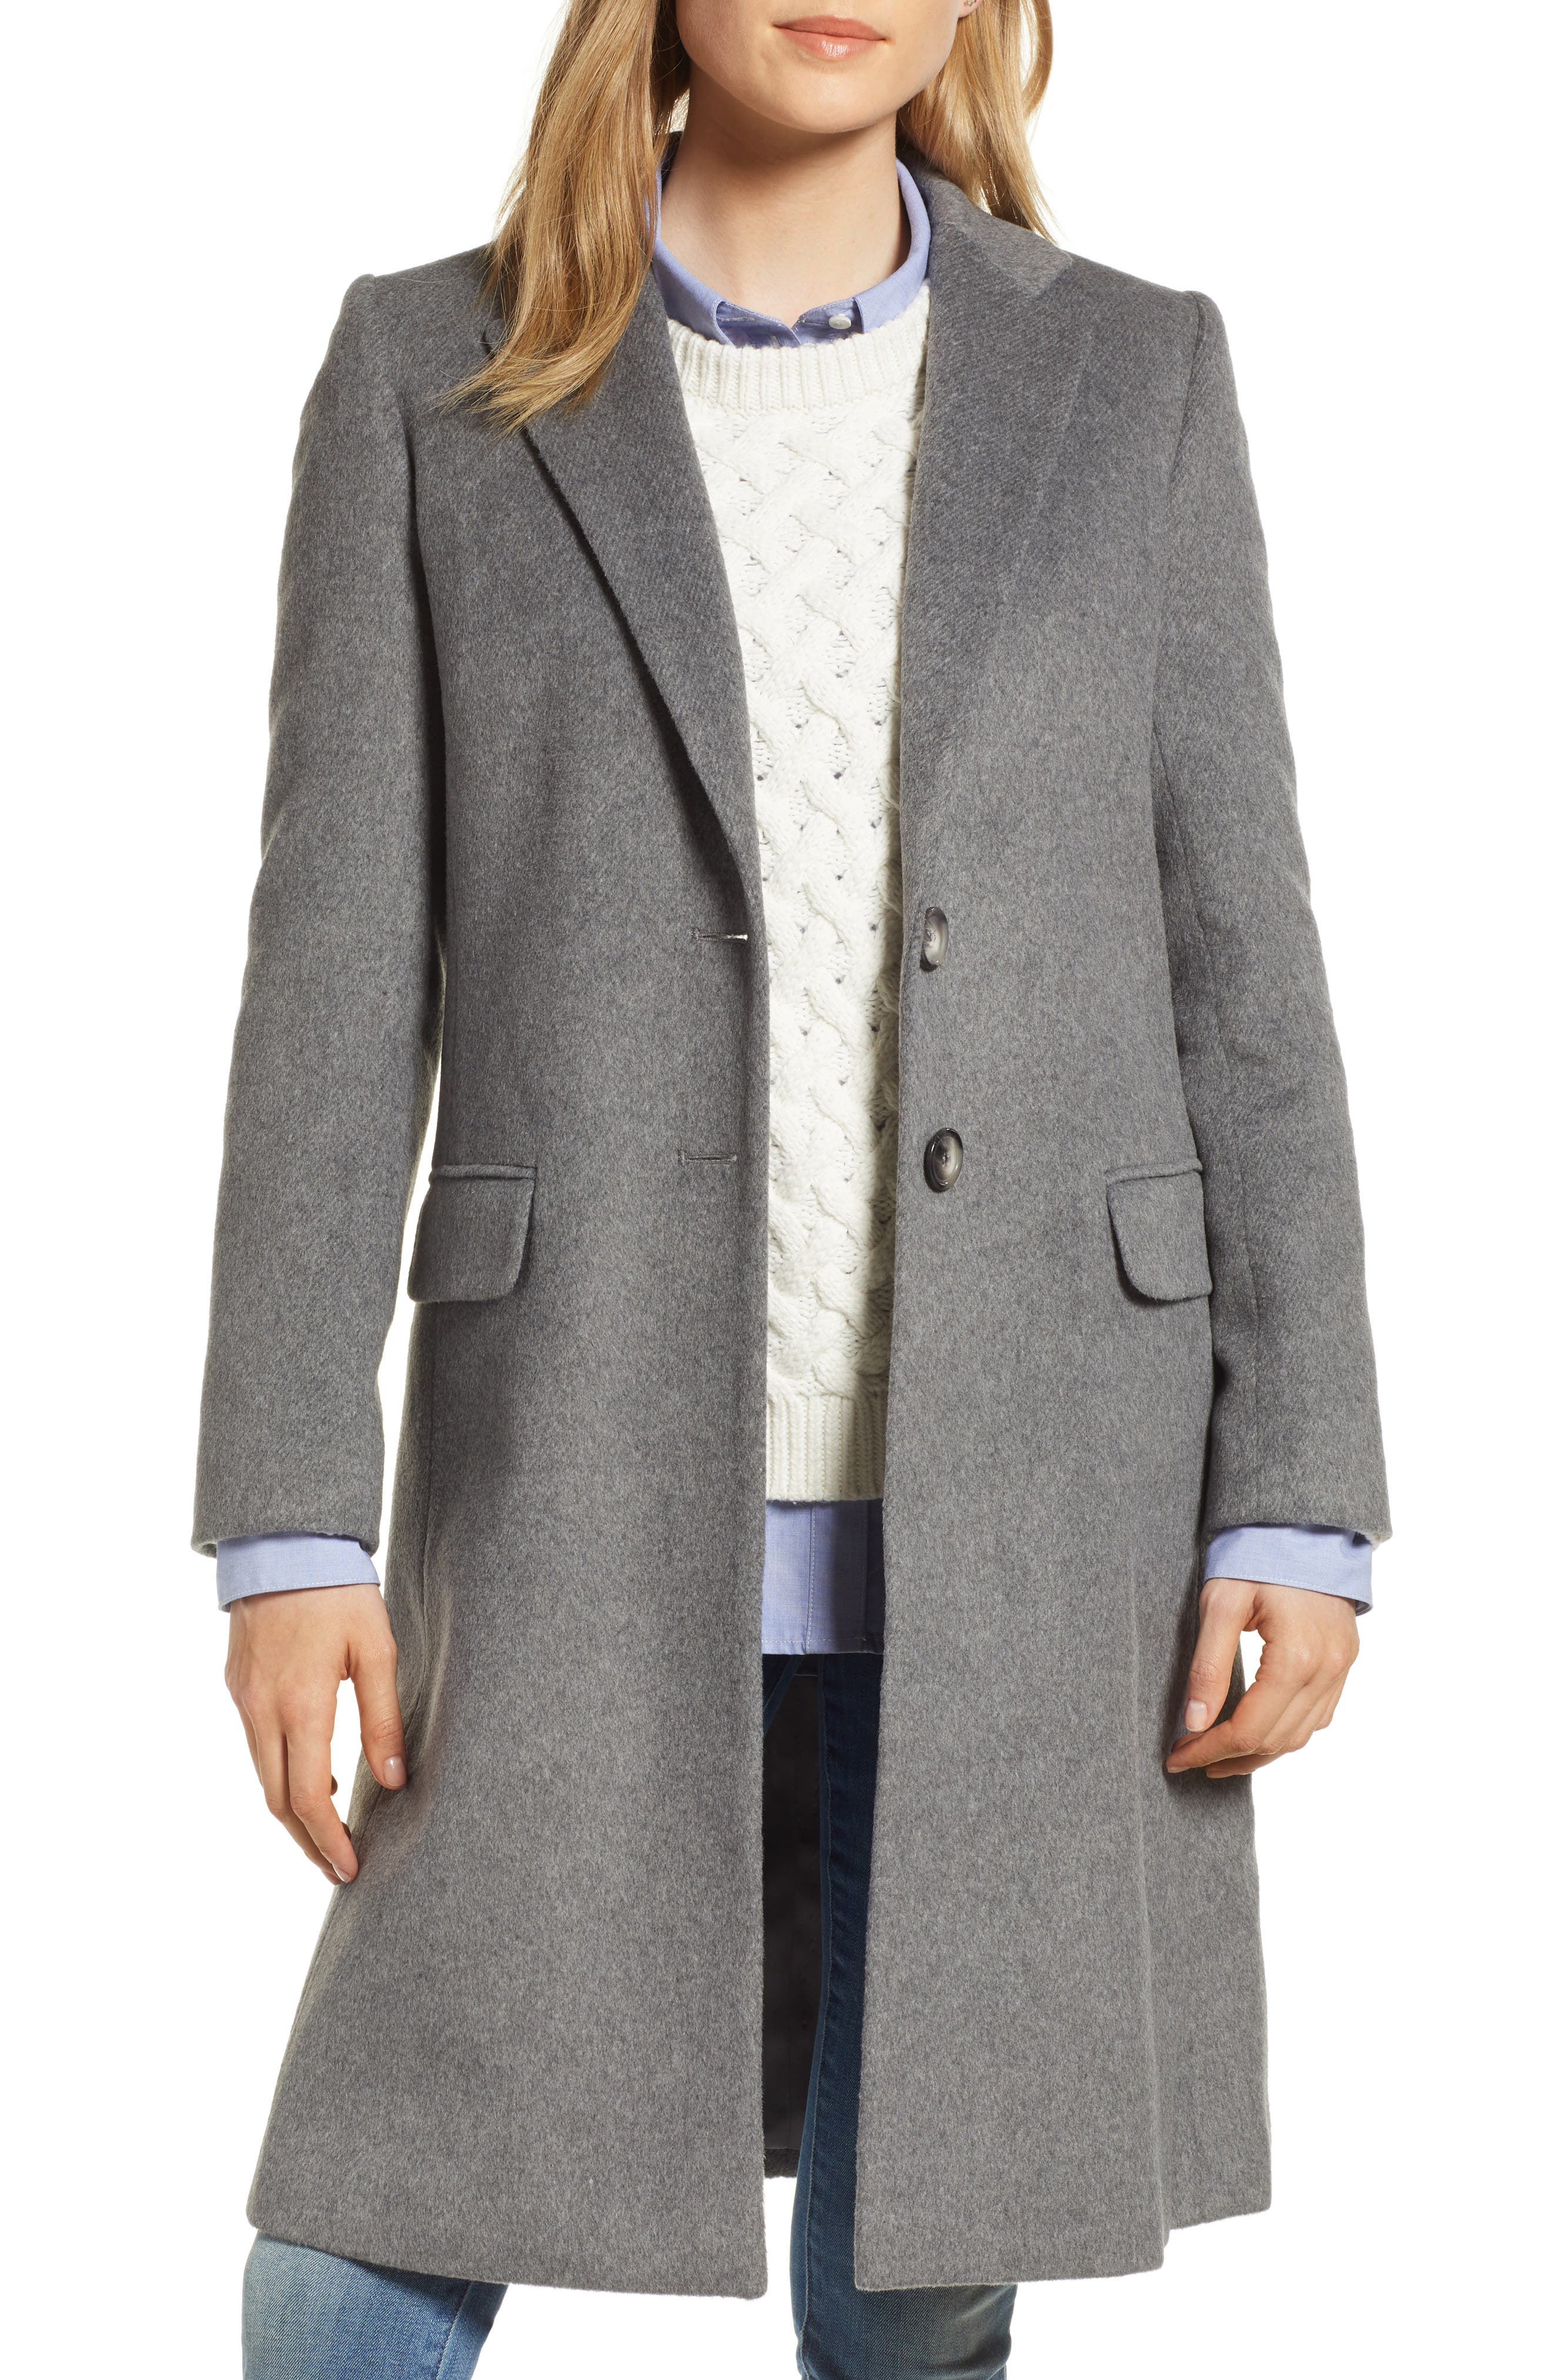 HELENE BERMAN Charles Gray London College Coat, Main, color, 020